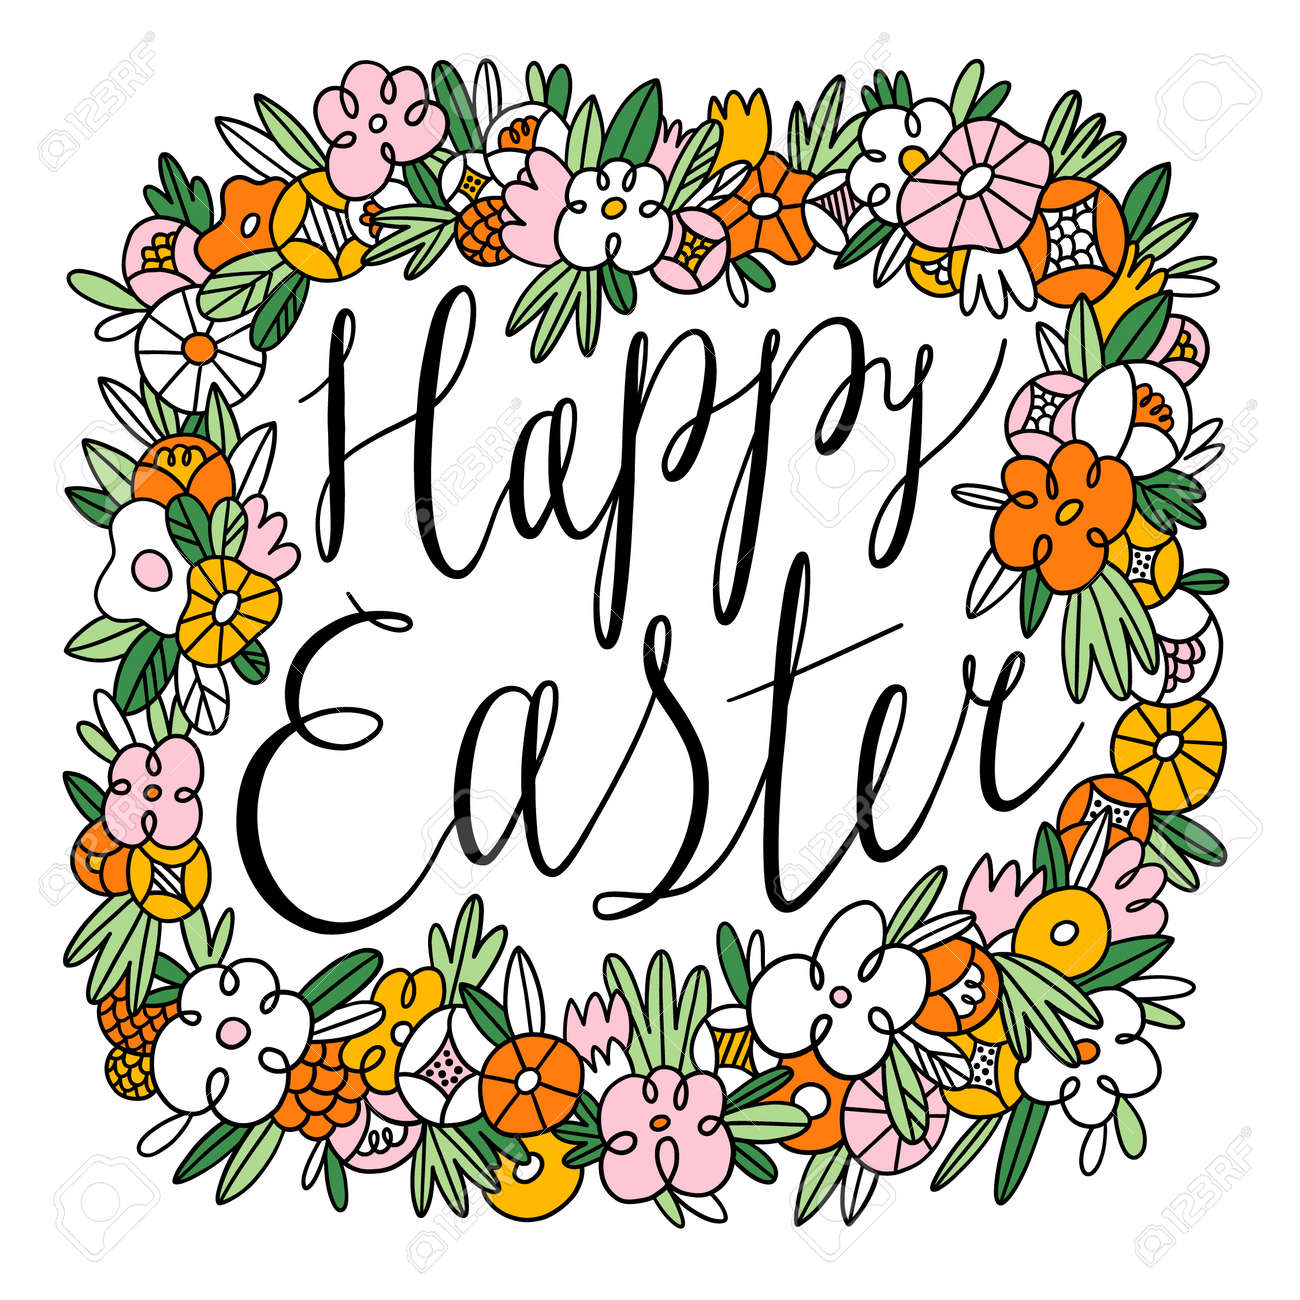 Happy Easter calligraphic black lettering inside beautiful floral frame, vector illustration isolated on white background - 161174357